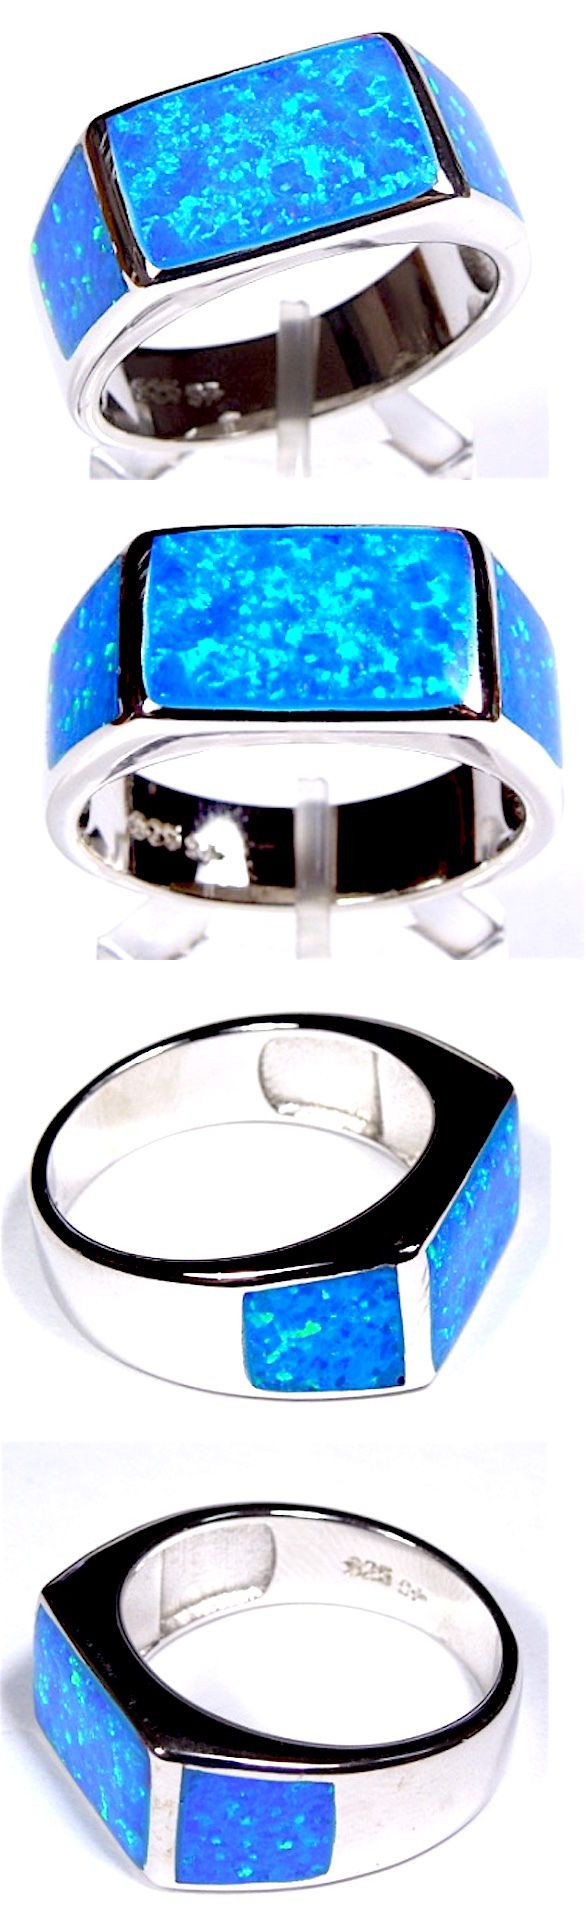 Men Jewelry: Blue Fire Opal Inlay Genuine 925 Sterling Silver Mens Ring Size 9-13 BUY IT NOW ONLY: $50.0